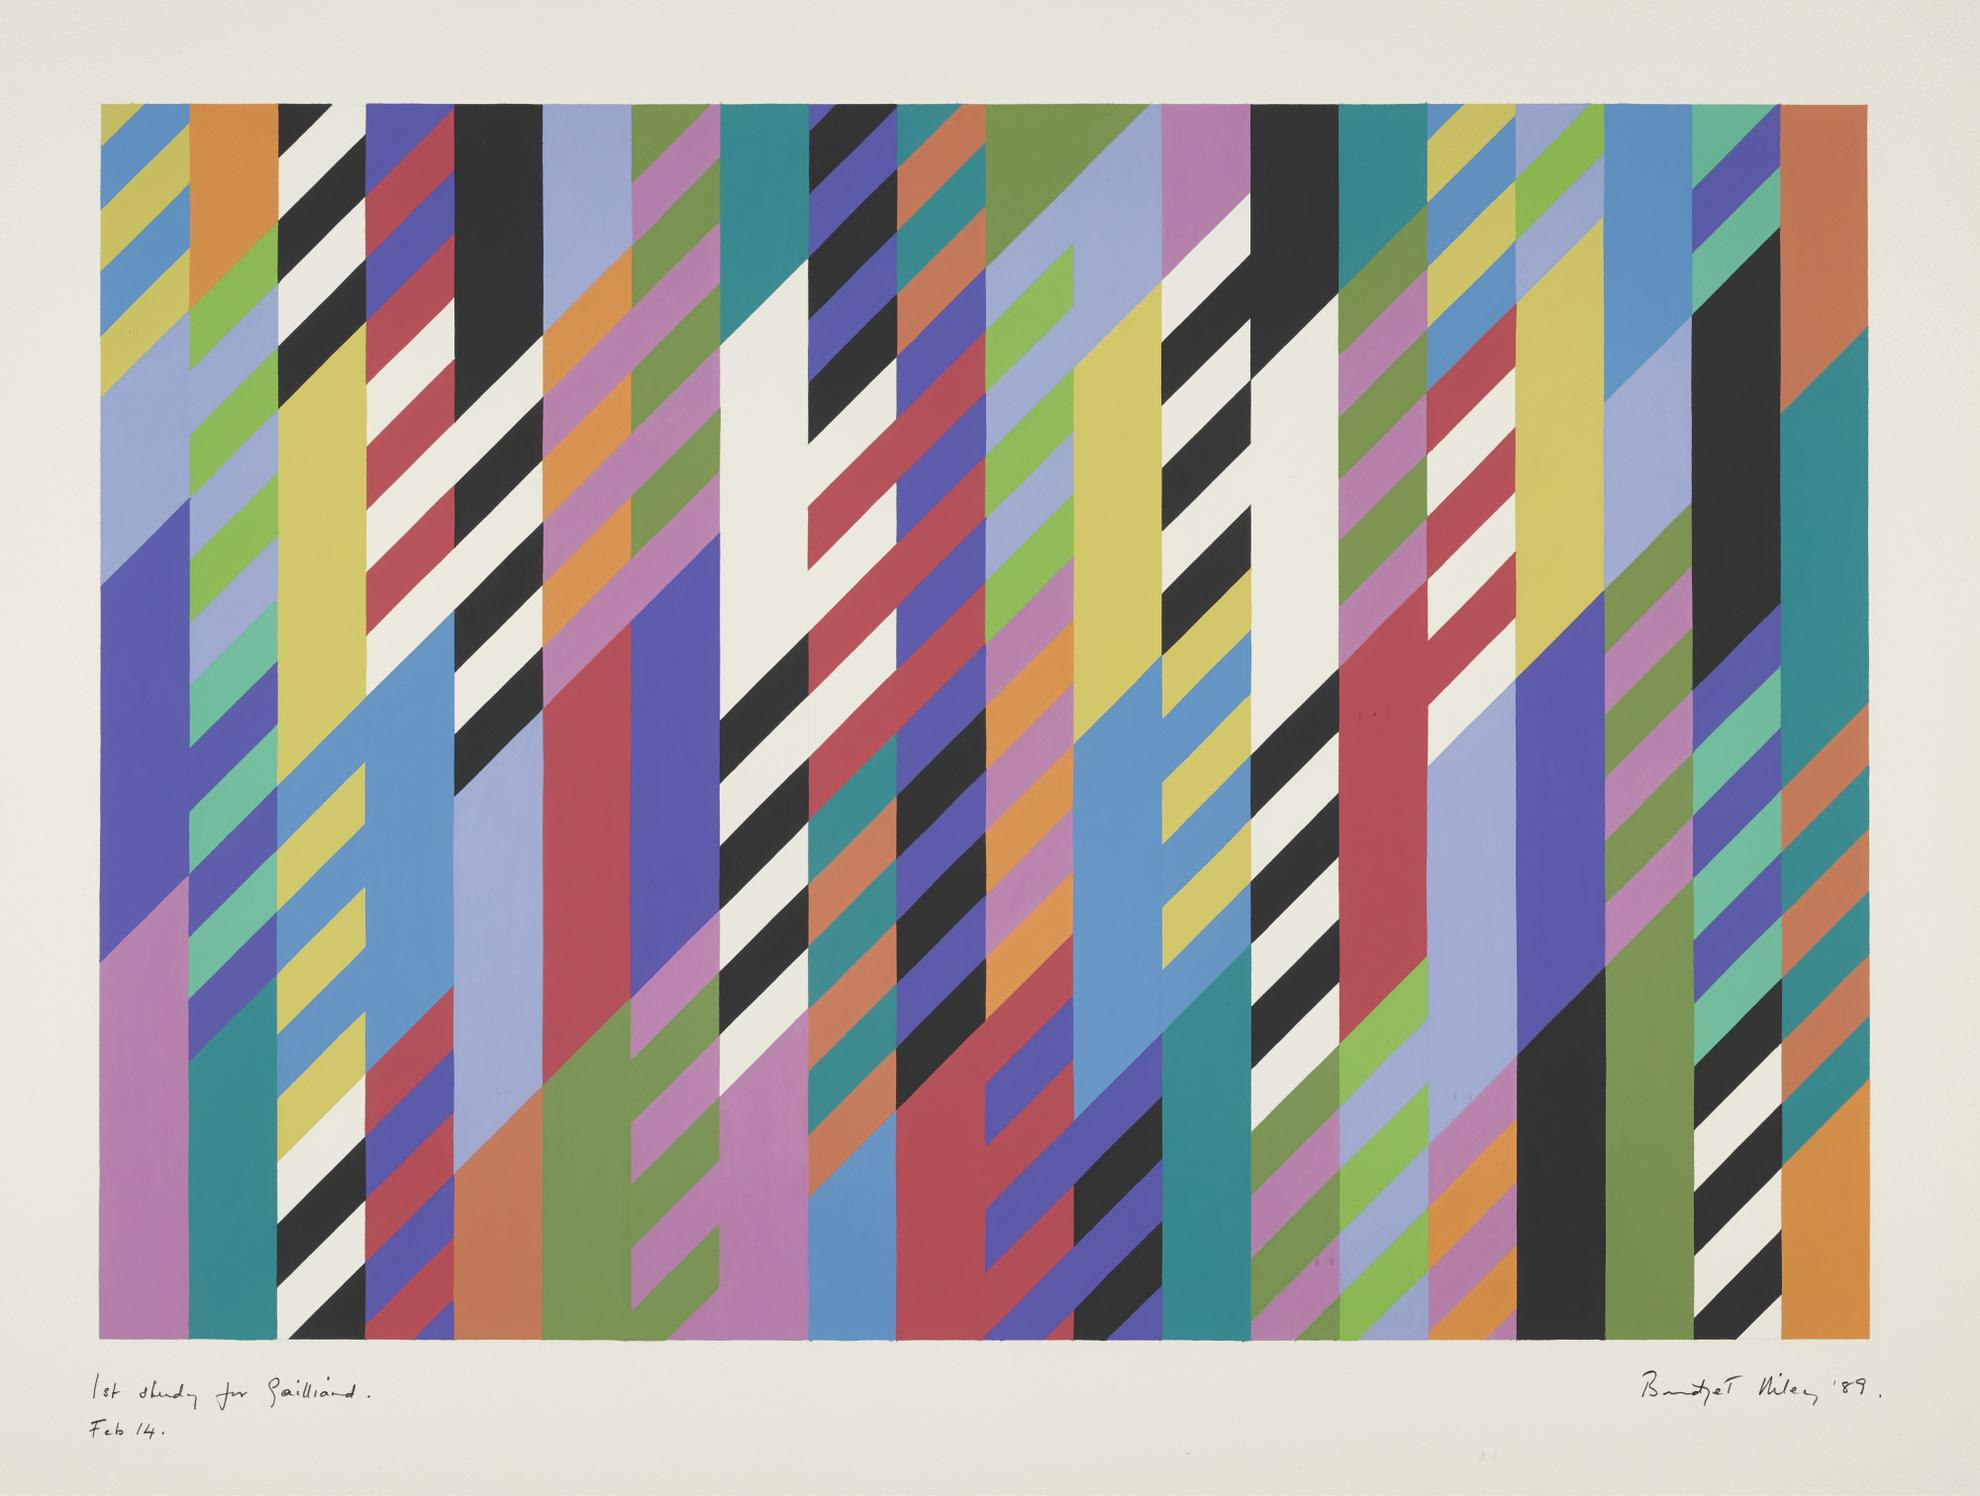 Bridget Riley-1St Study For Gailliard-1989